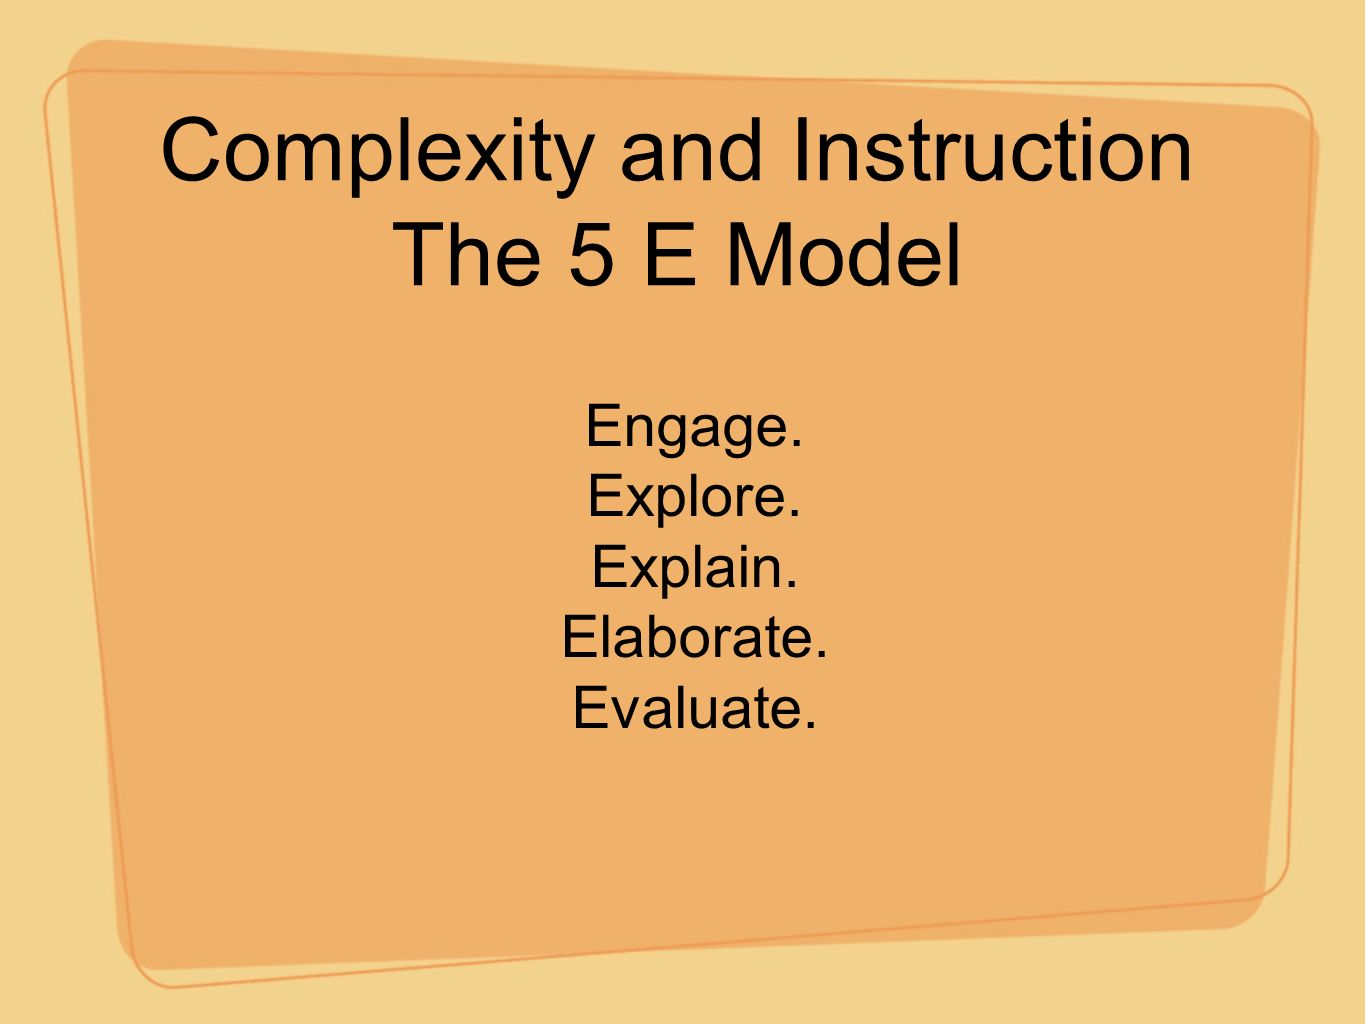 Complexity and Instruction The 5 E Model Engage. Explore. Explain. Elaborate. Evaluate.